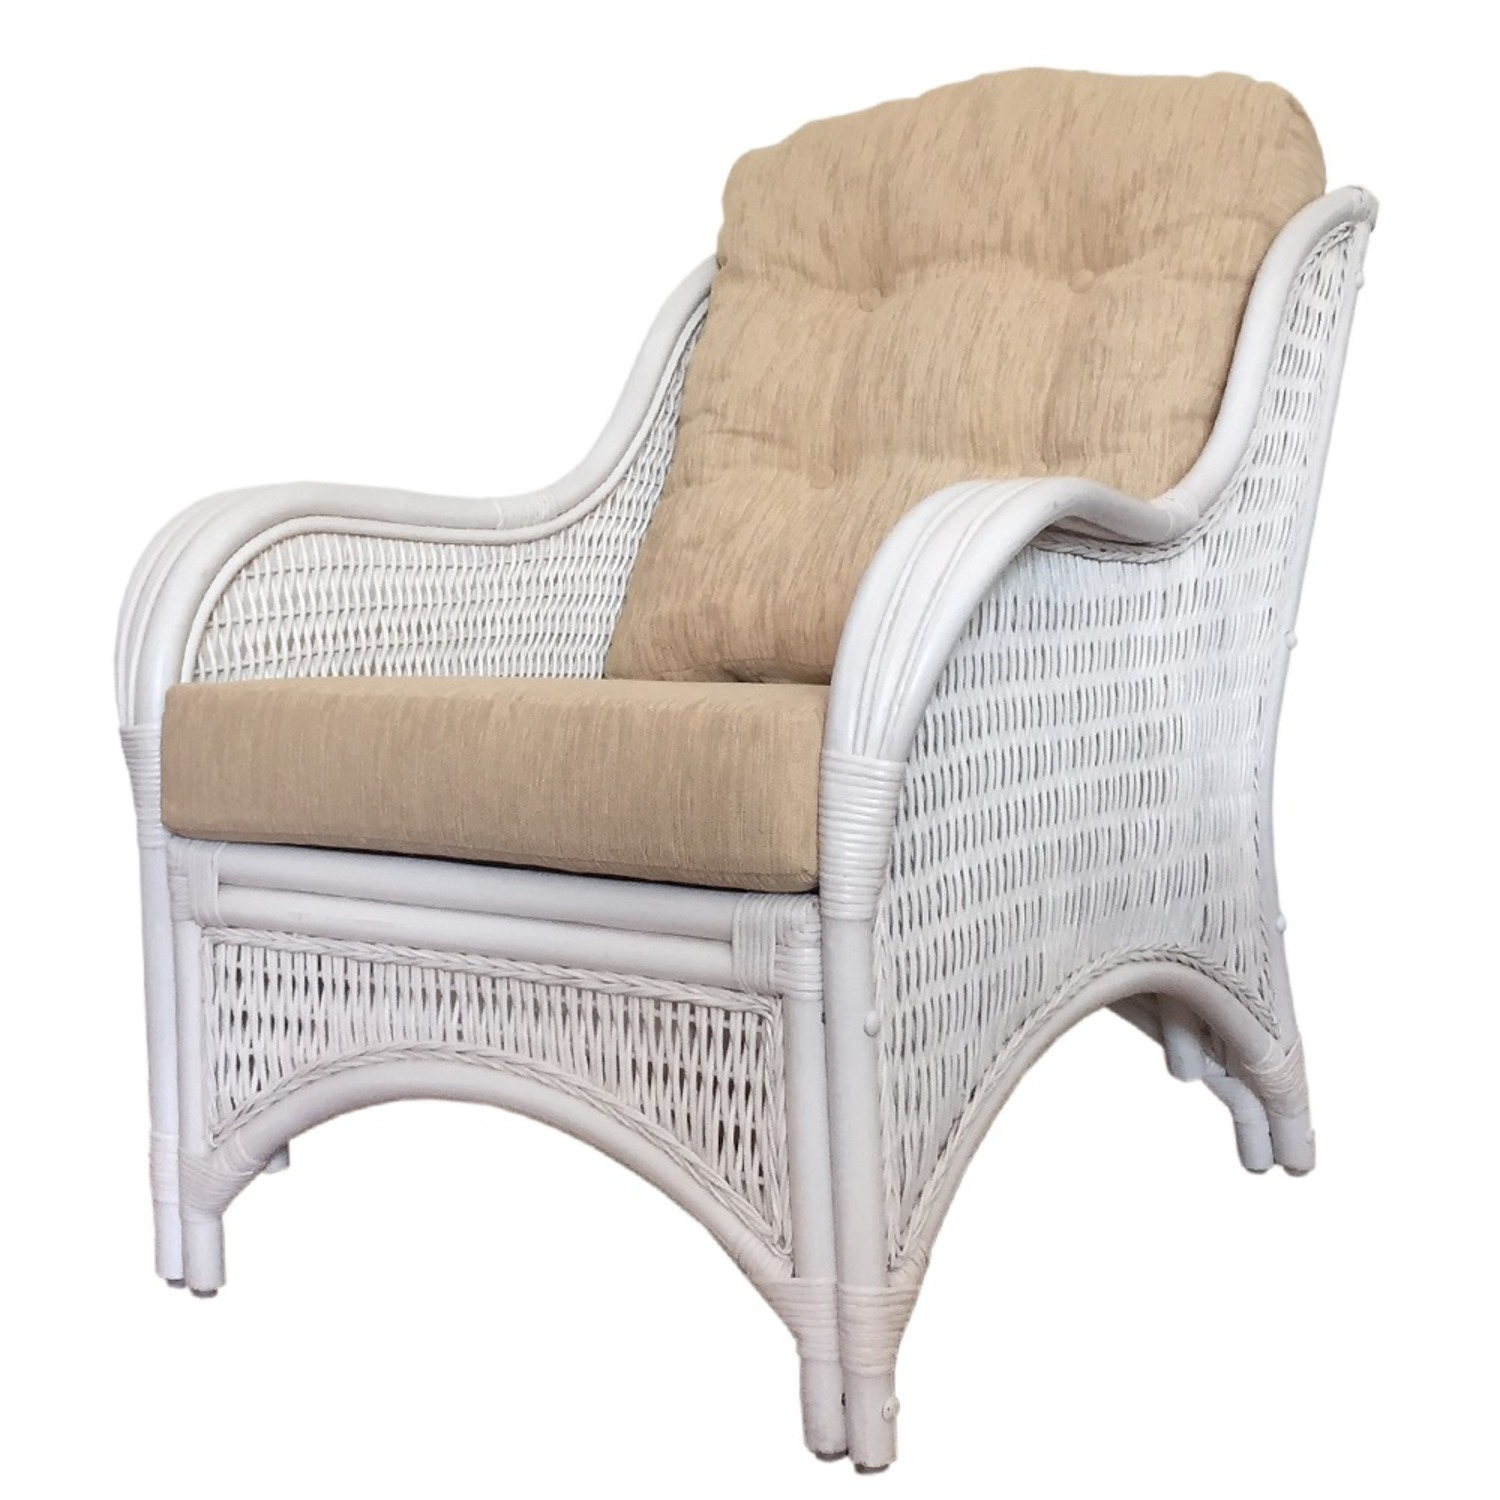 Karmen White Solid Rattan Lounge Chair - image-0